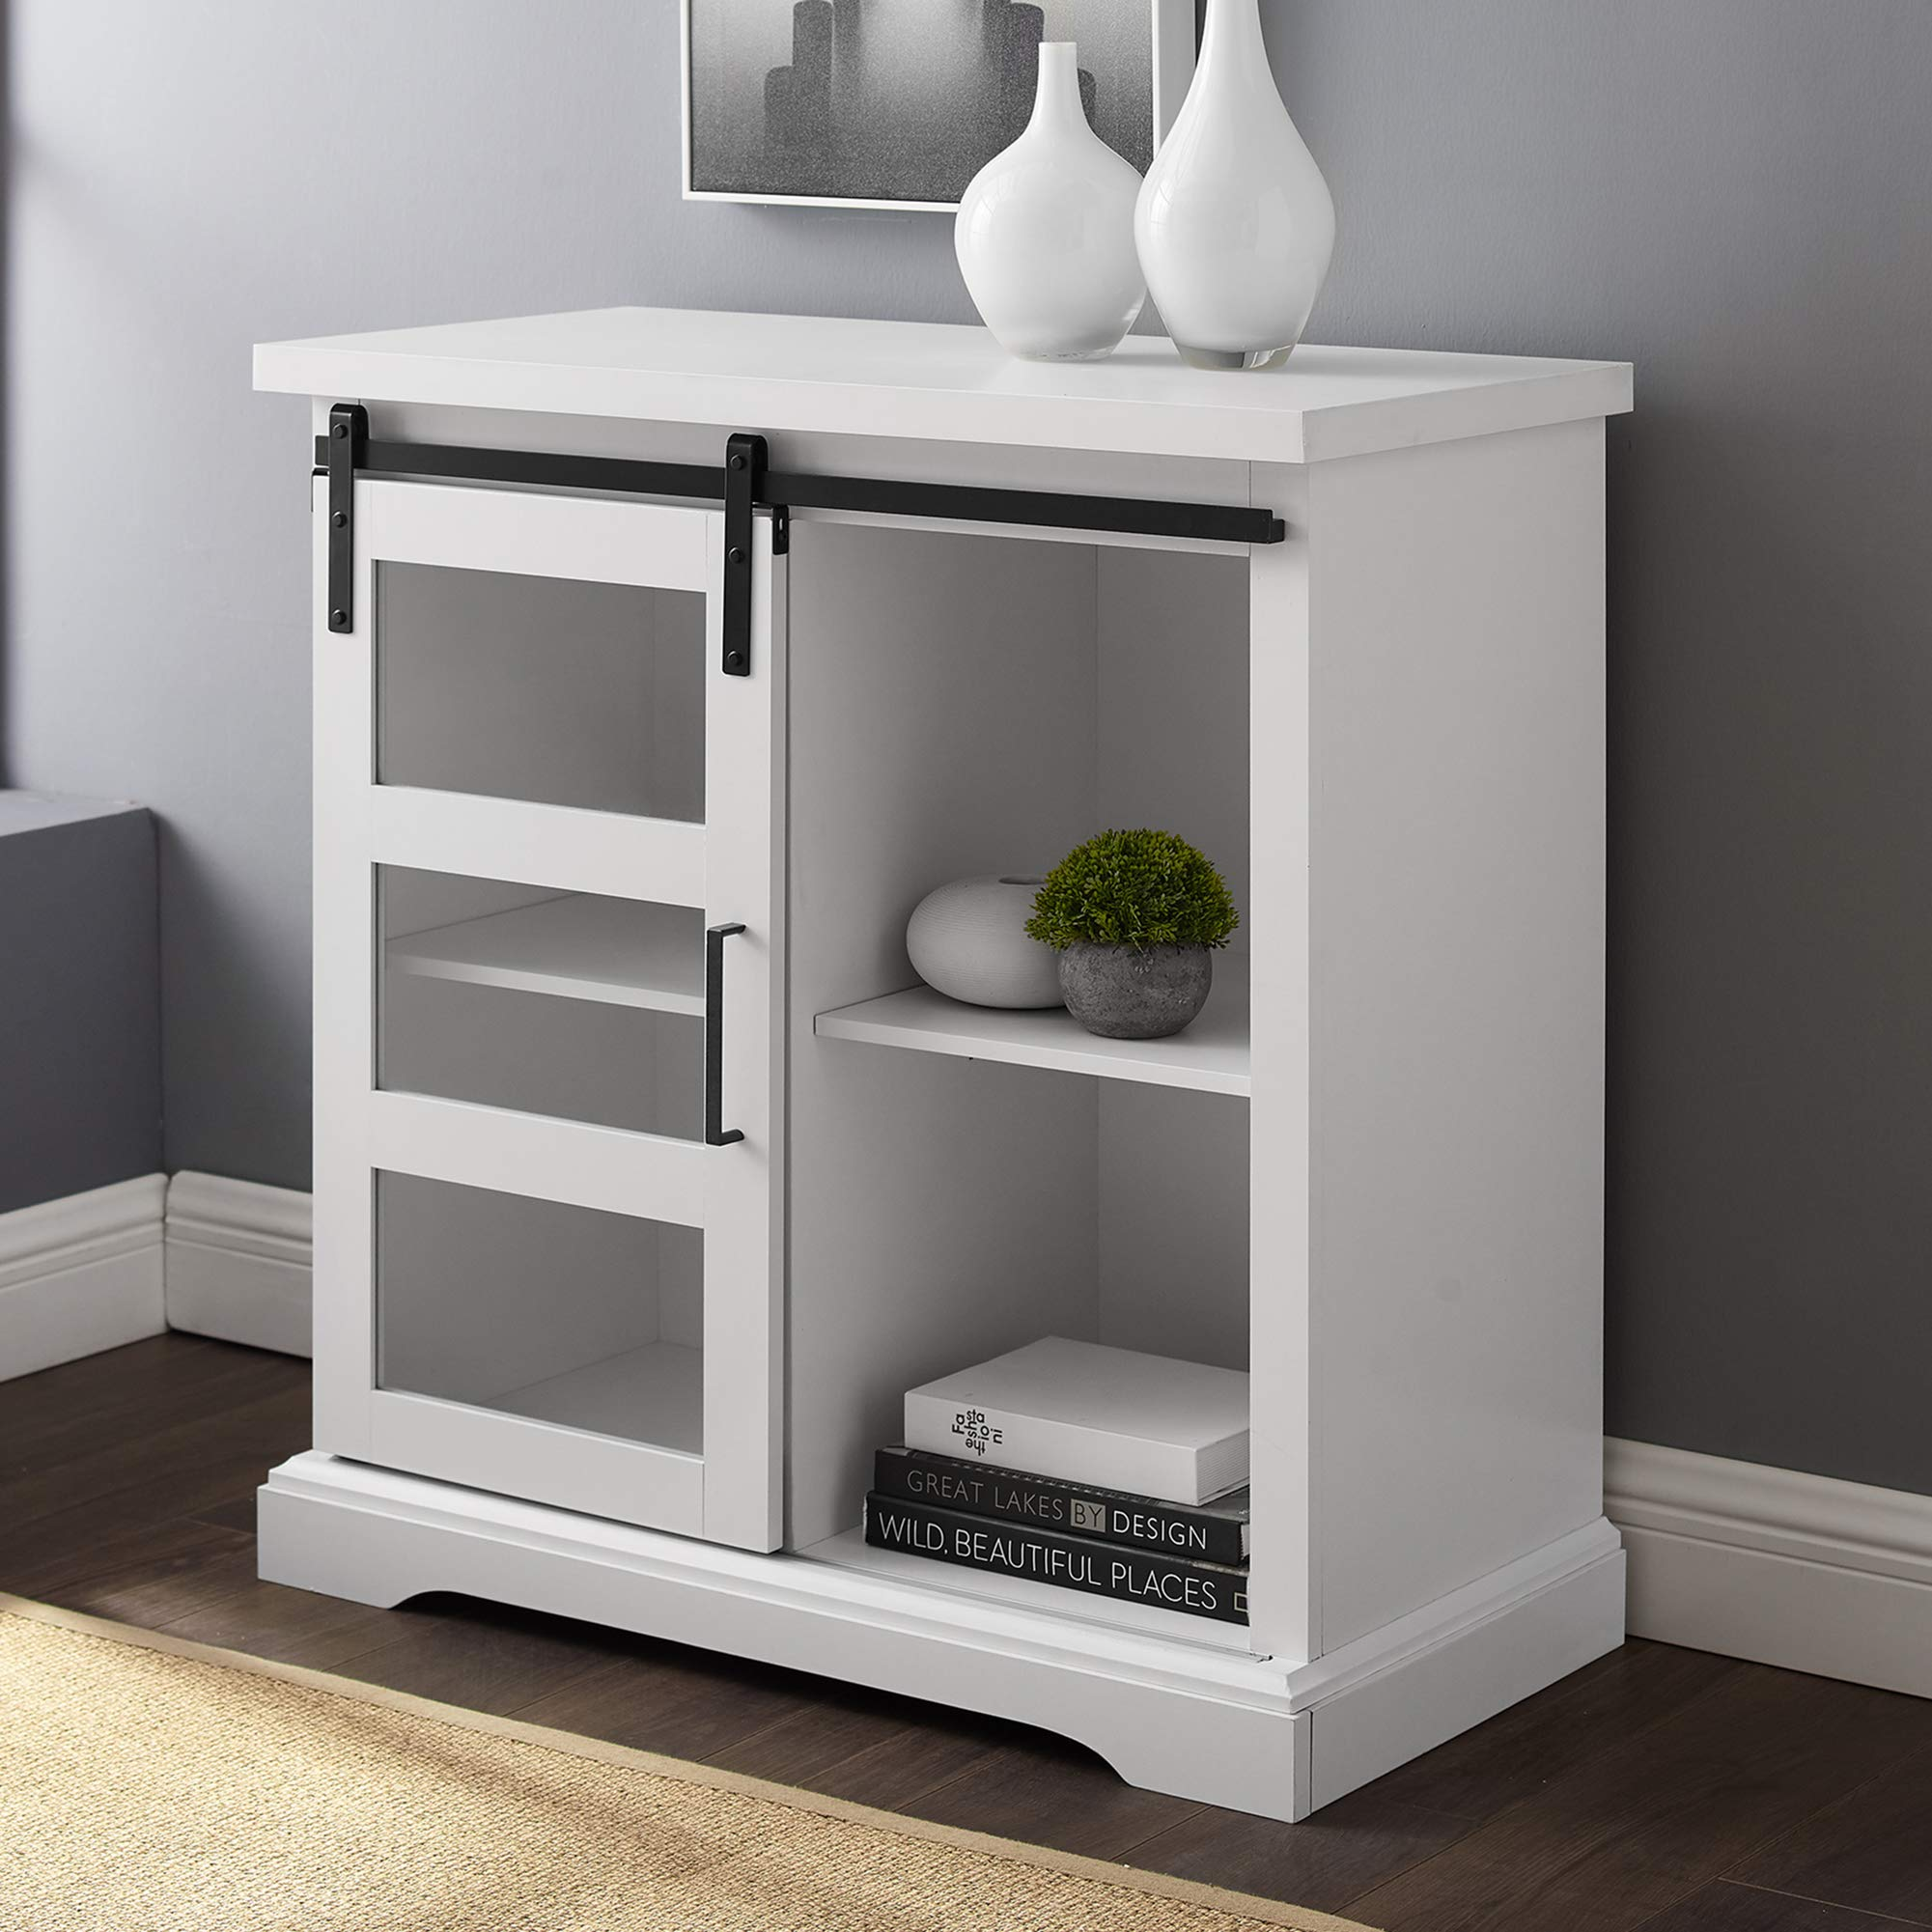 WE Furniture Modern Farmhouse Buffet Entryway Bar Cabinet Storage Entry Table Living Room, 32 Inch, White by WE Furniture